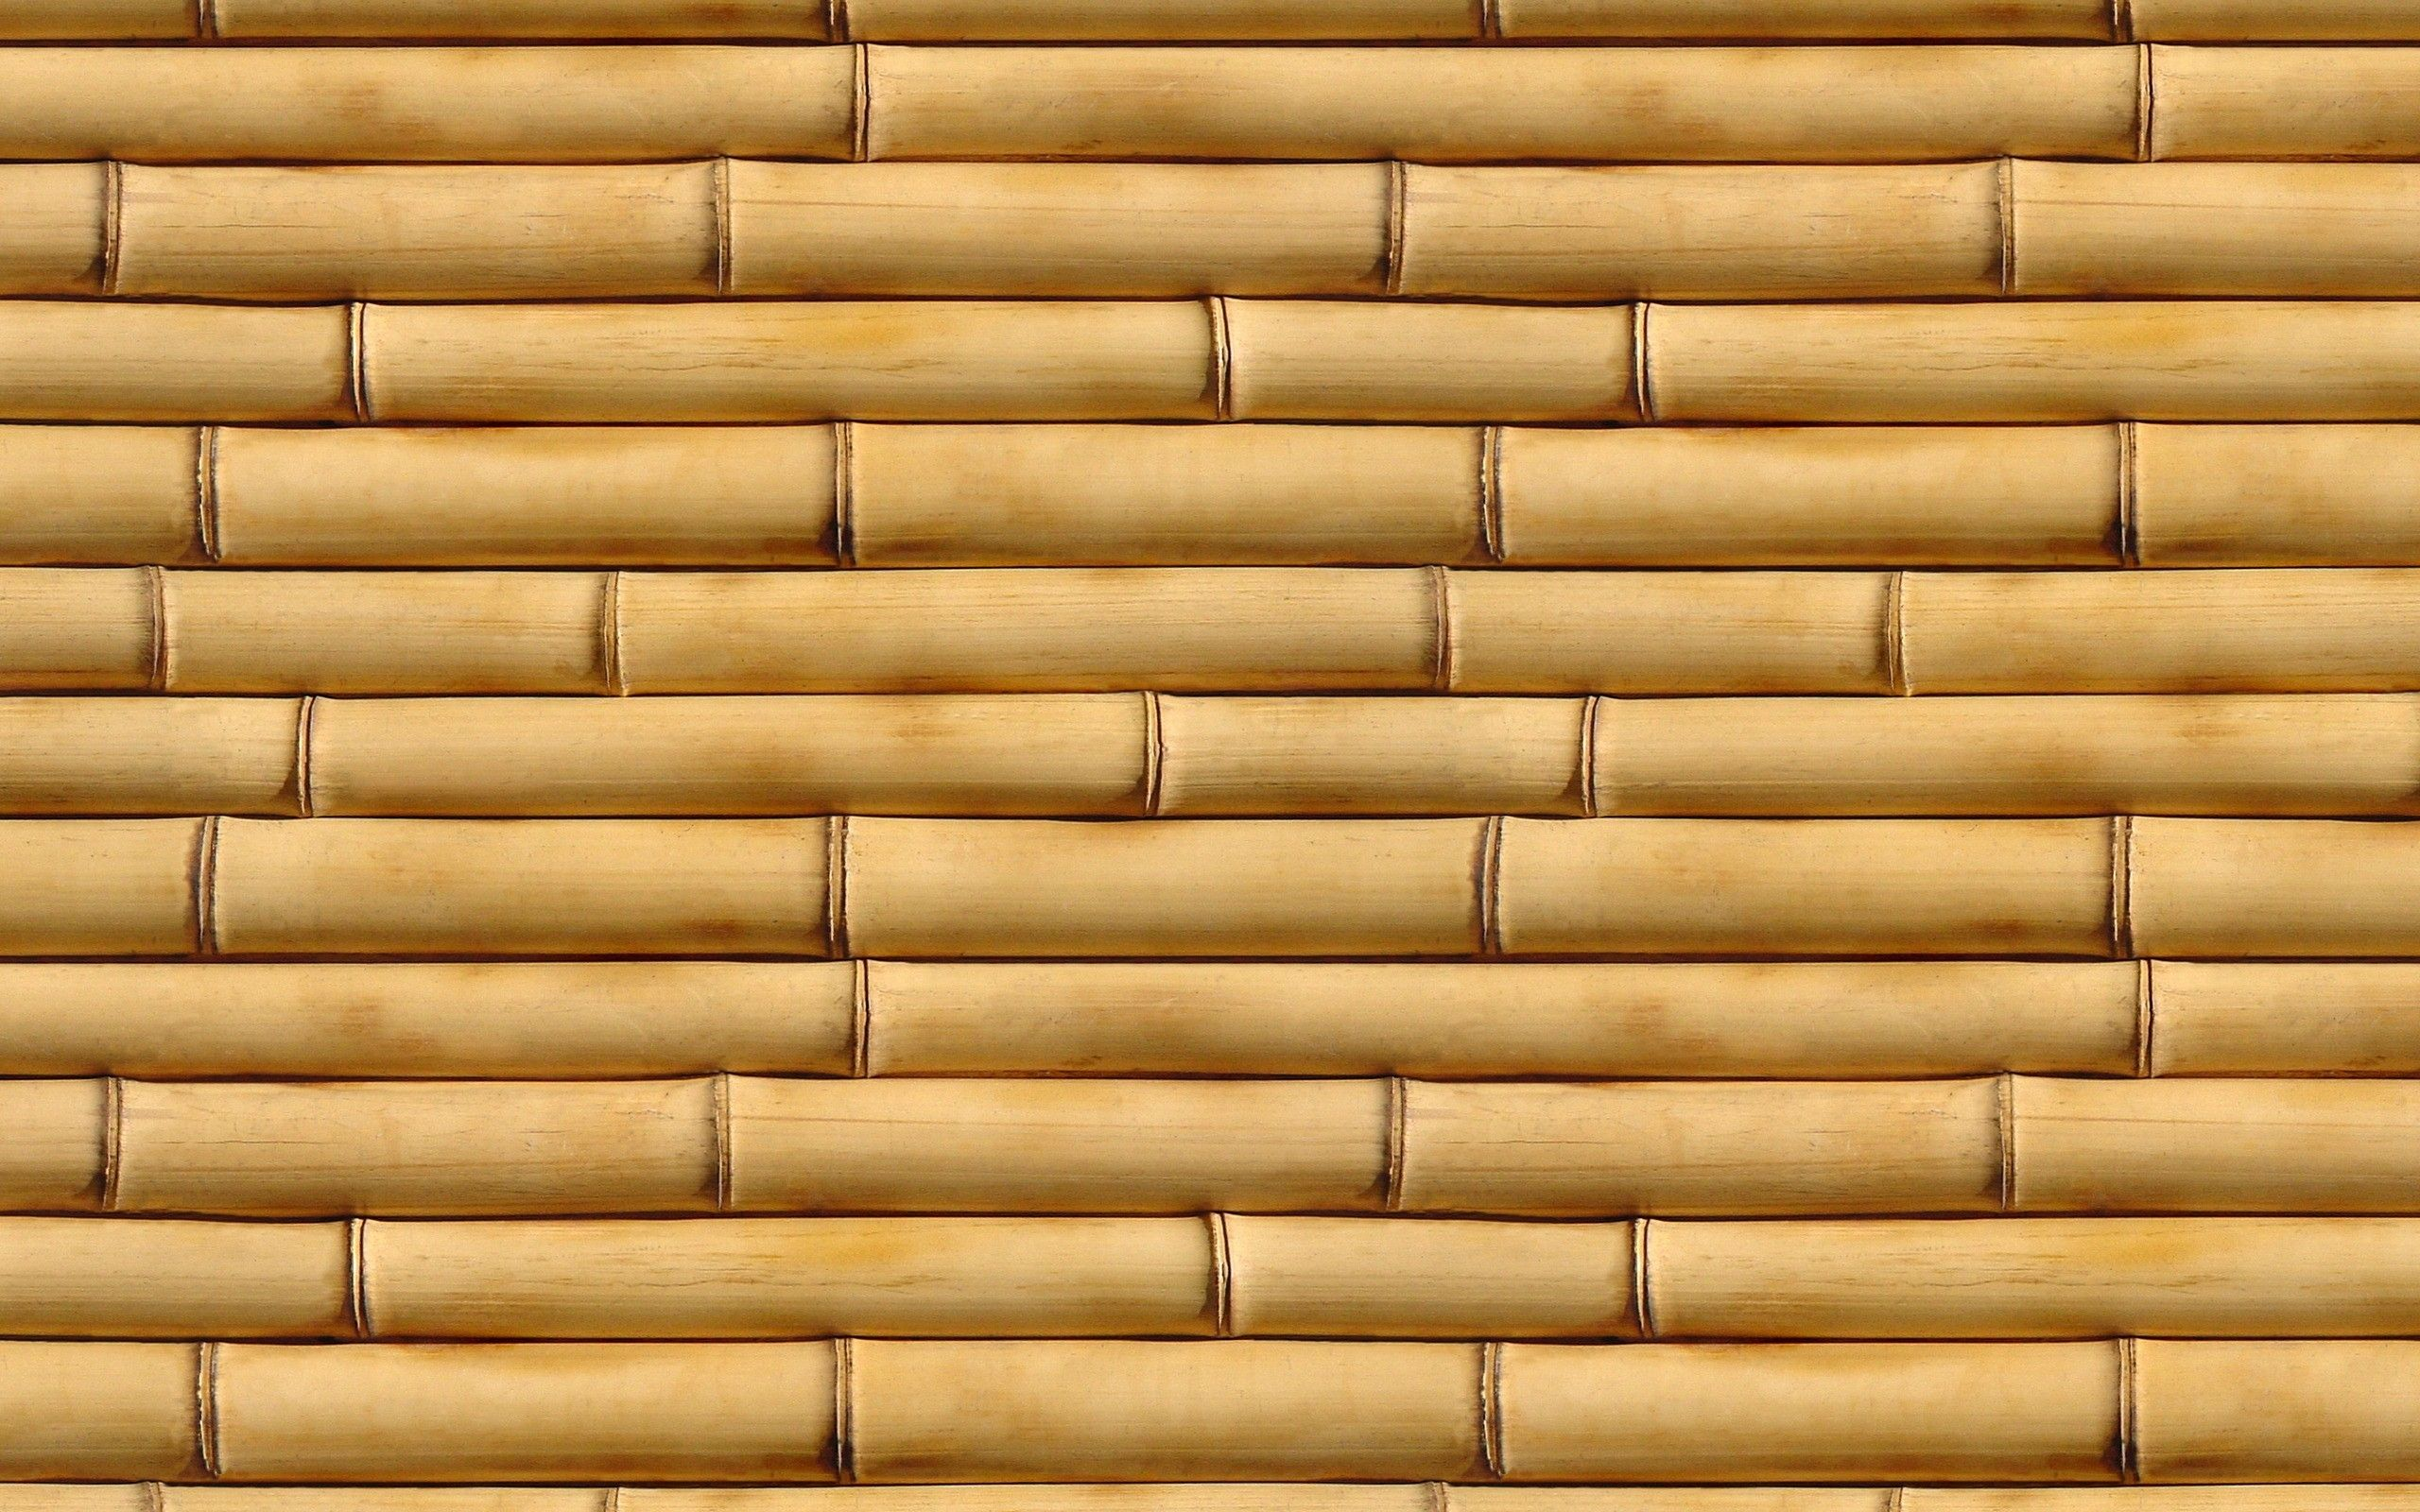 Bamboo background wallpaper brown japan in me for Bamboo wallpaper for walls